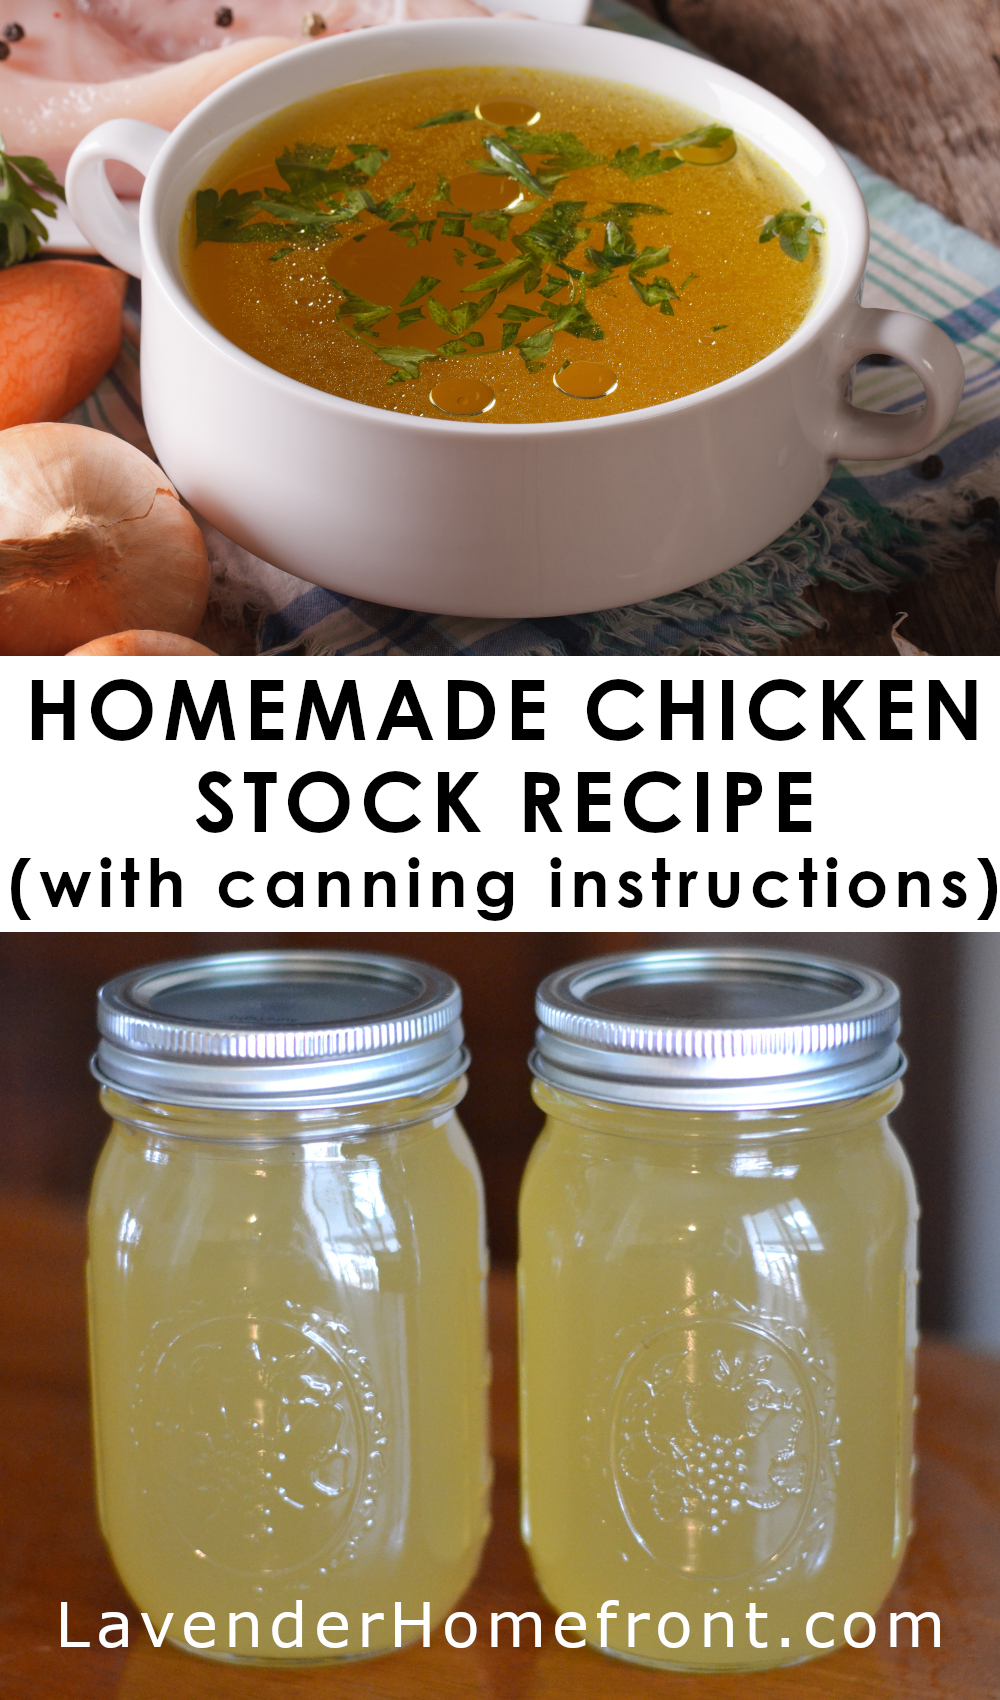 homemade chicken stock recipe with canning instructions pinnable image.